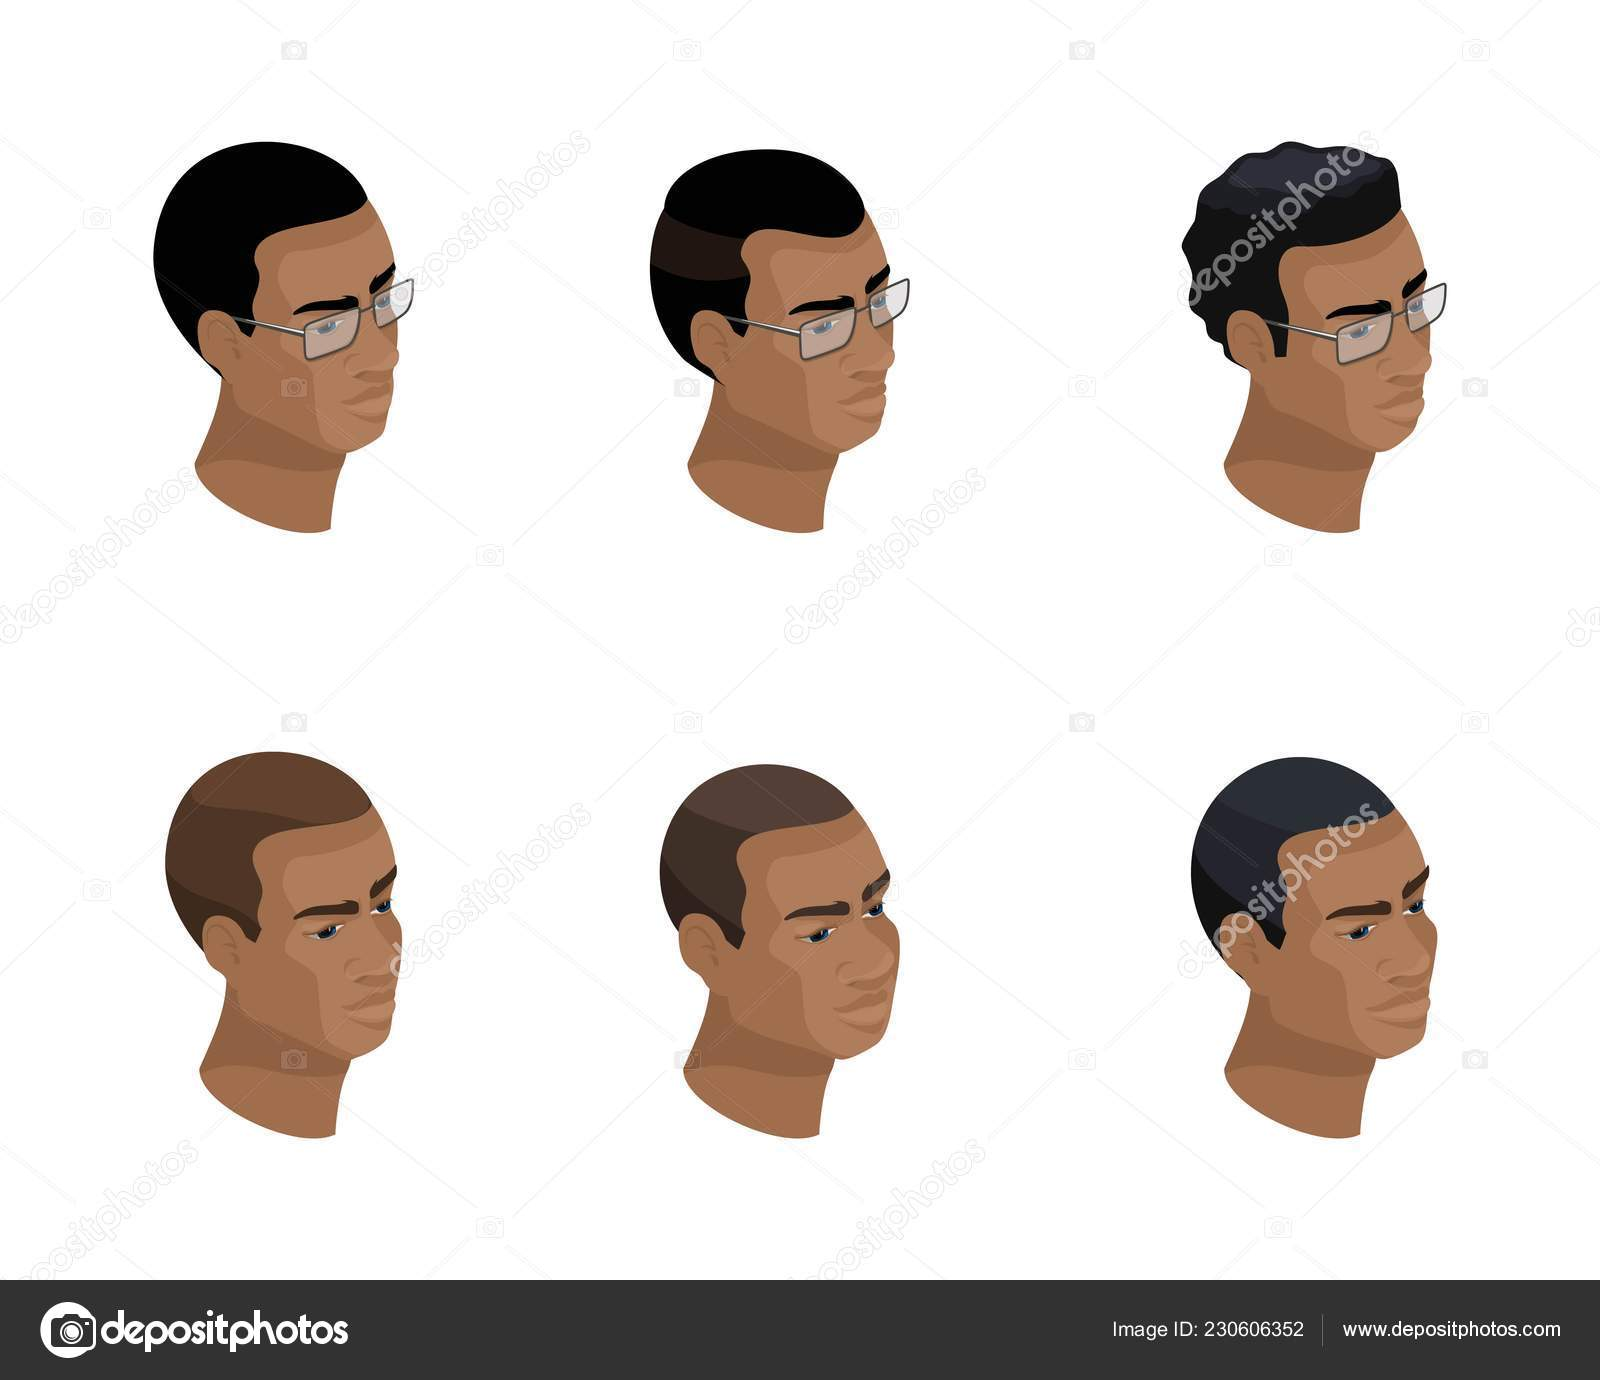 Isometry Of An Icon Of A Head Of A Hairstyle Of An African American